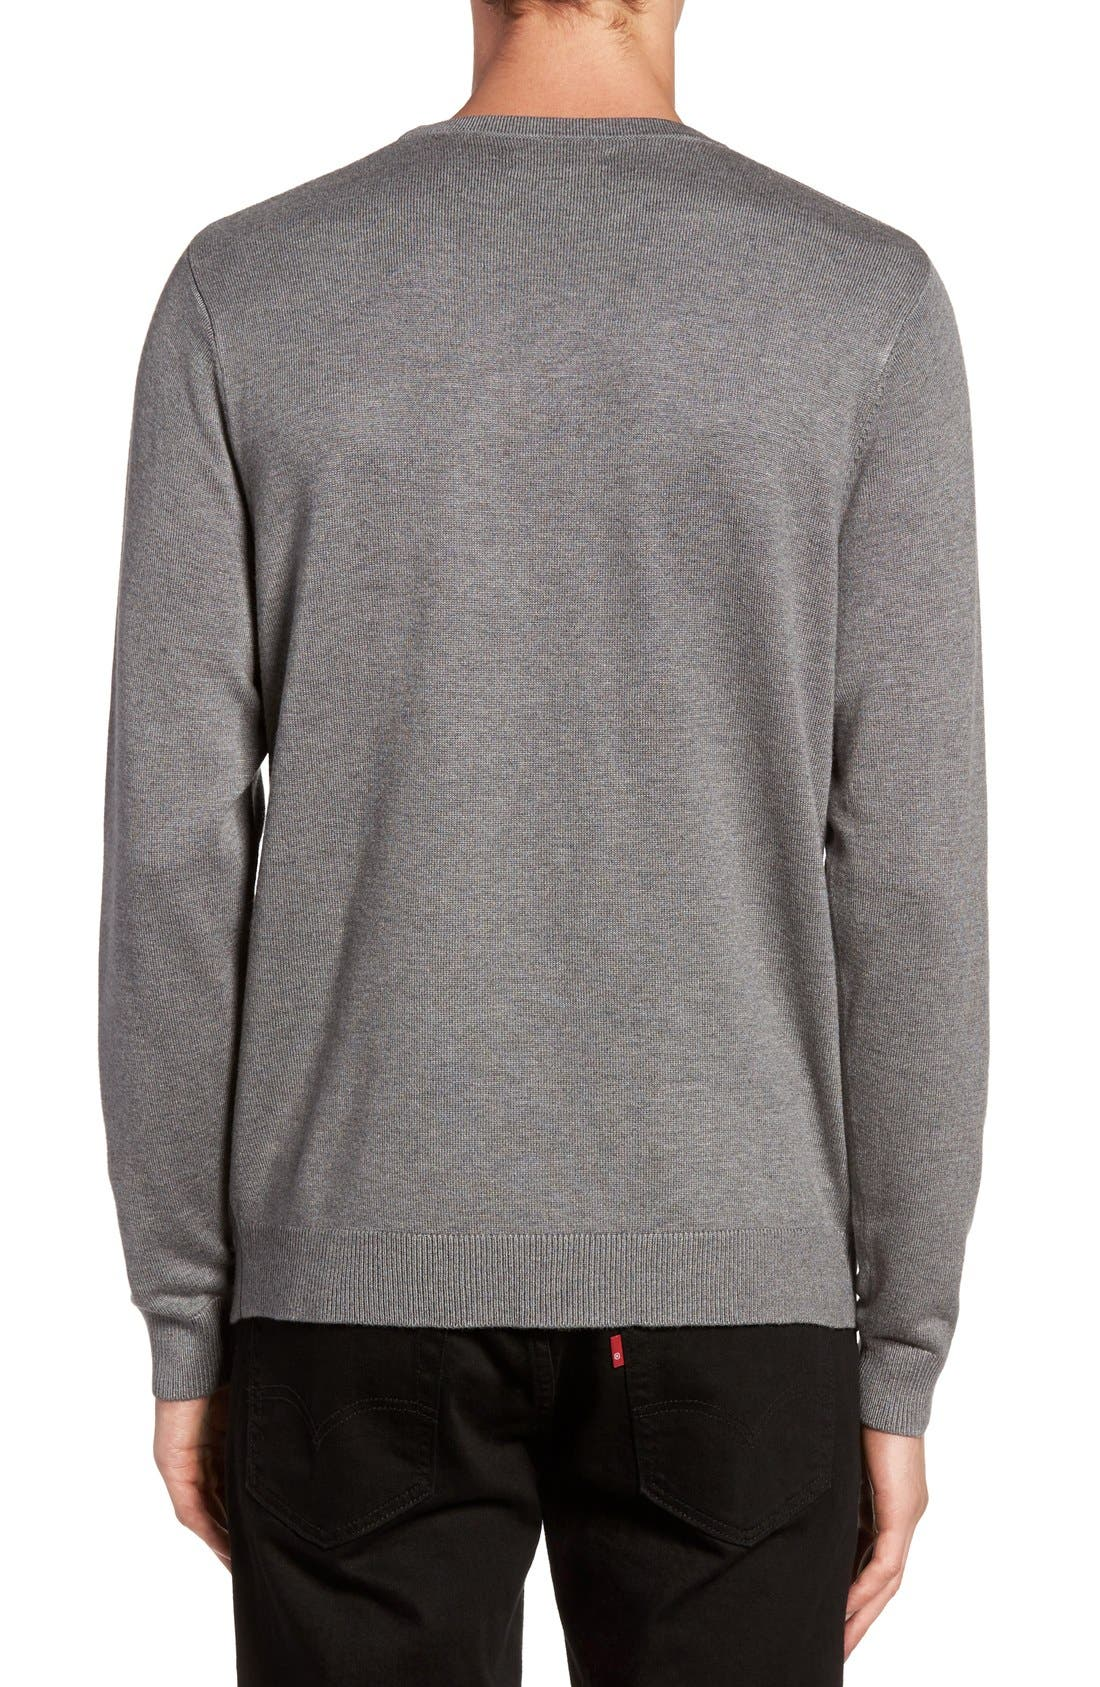 Honeycomb Stitch Crewneck Sweater,                             Alternate thumbnail 2, color,                             Grey Cloudy Heather